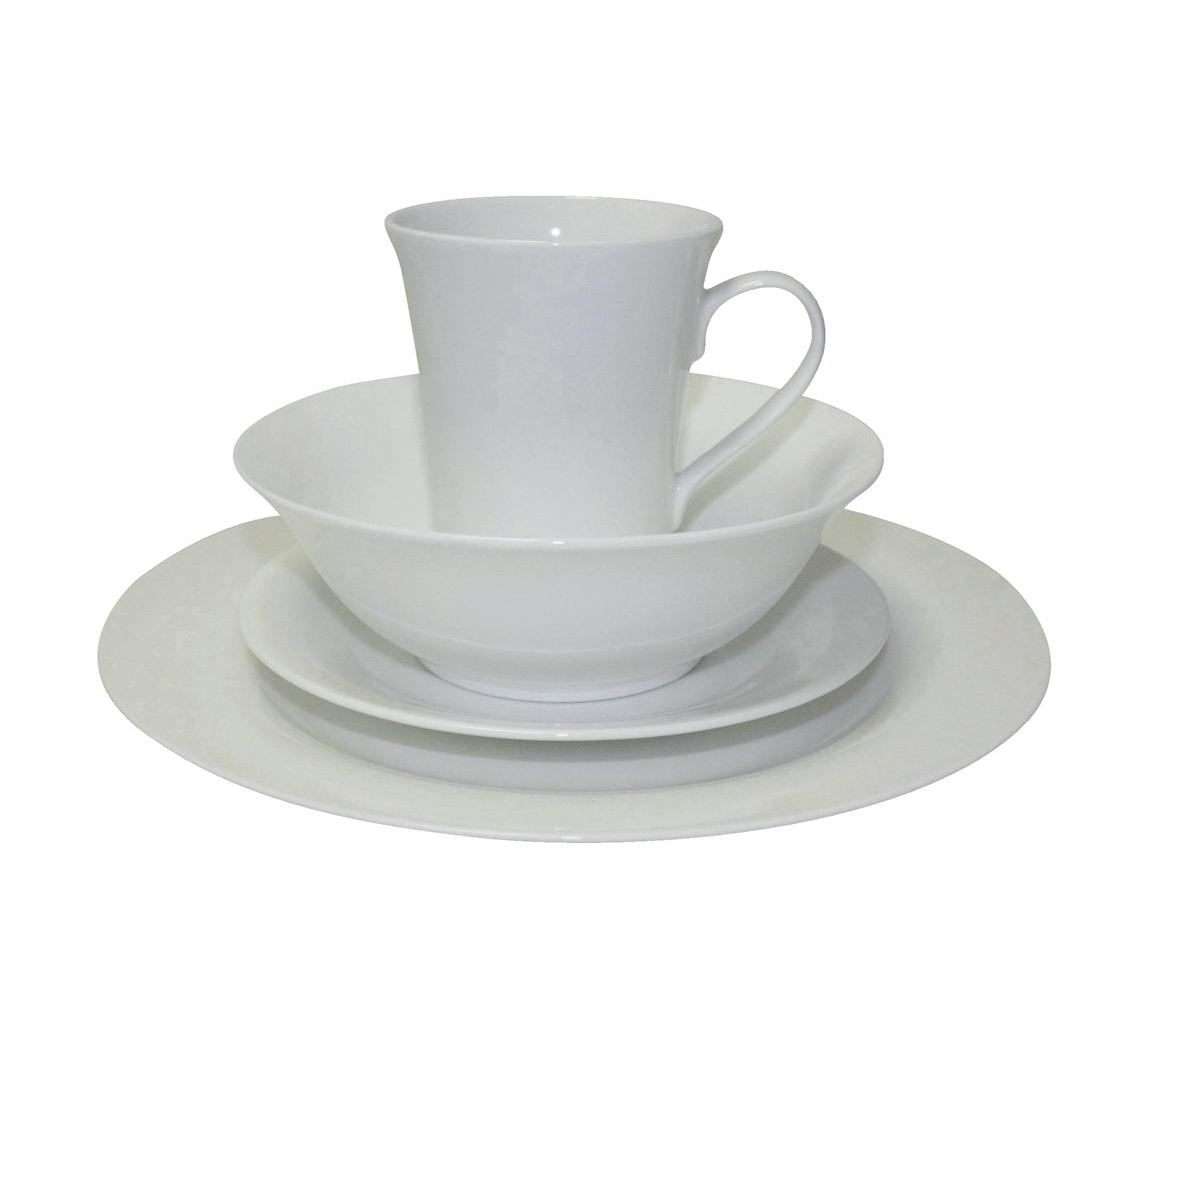 5 Star Facilities Dinner Set Fine Bone China 16 Piece White